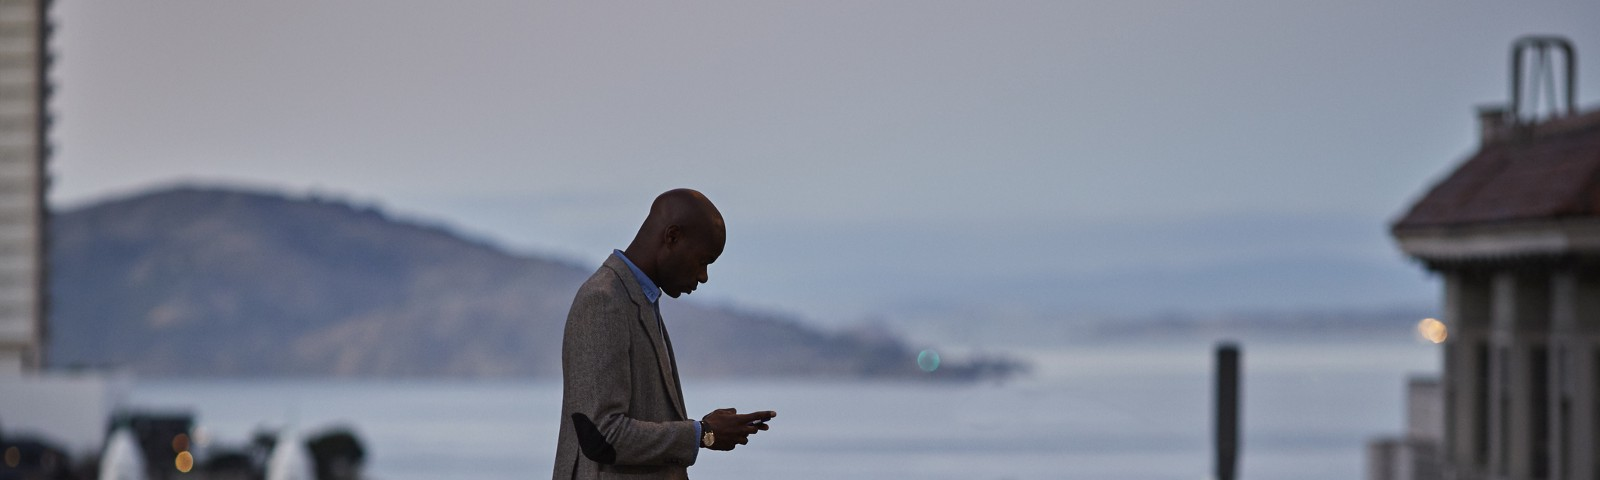 Black businessman checking phone while on the street in San Francisco in the evening.